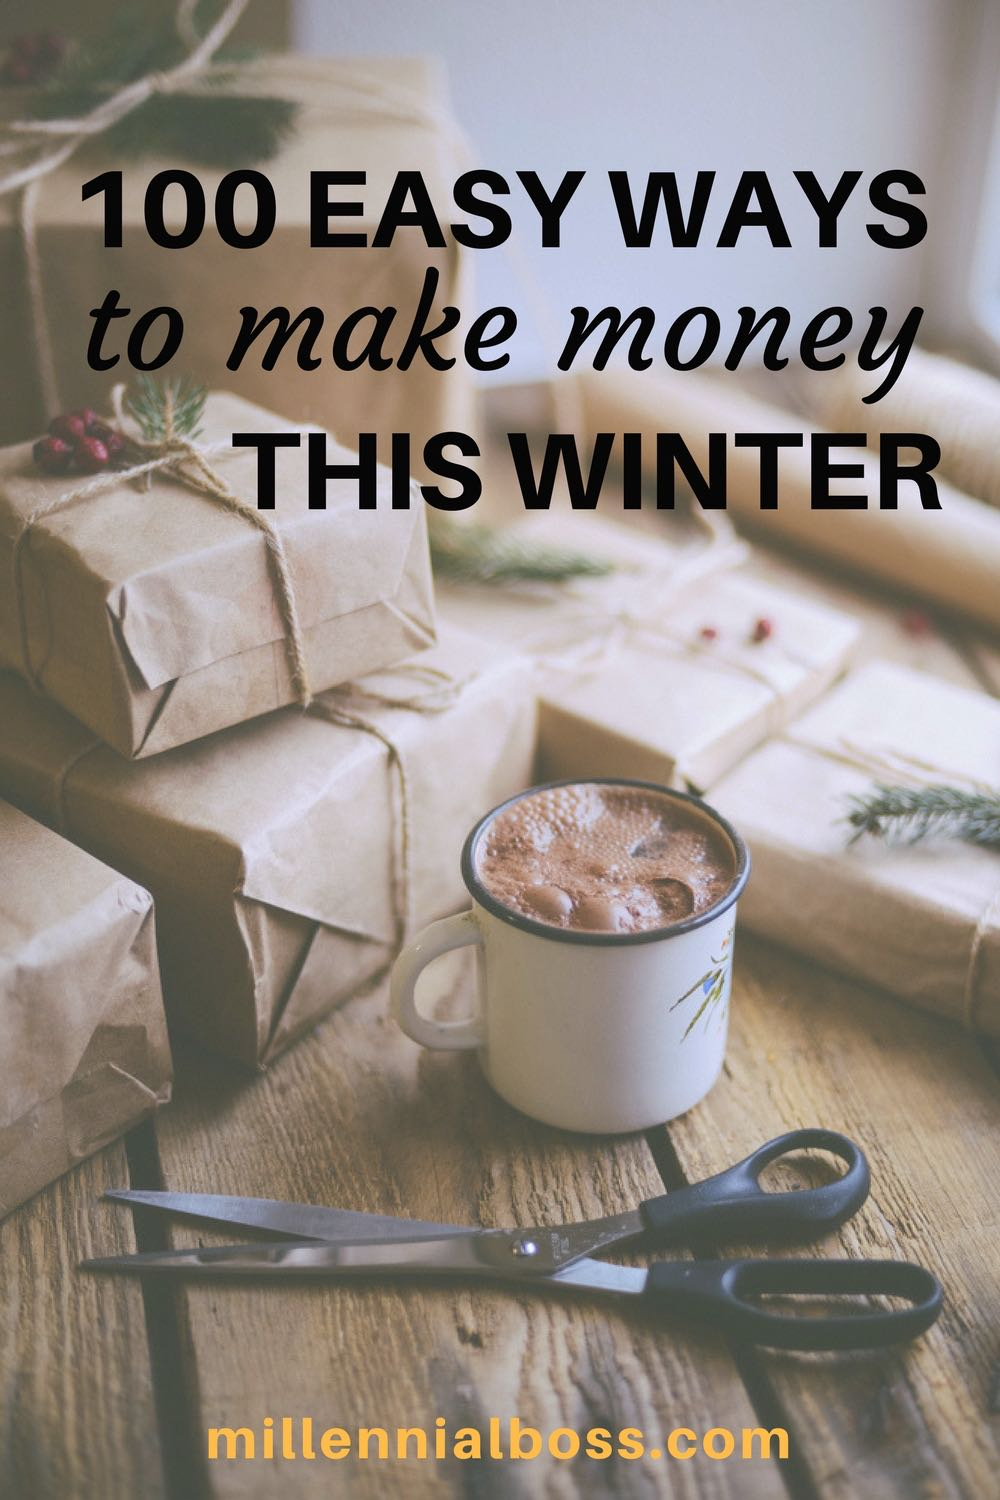 make money working from home How to make money working from home with work at home solutions, online business ideas, affiliate marketing, work at home opportunities, and home business ideas.